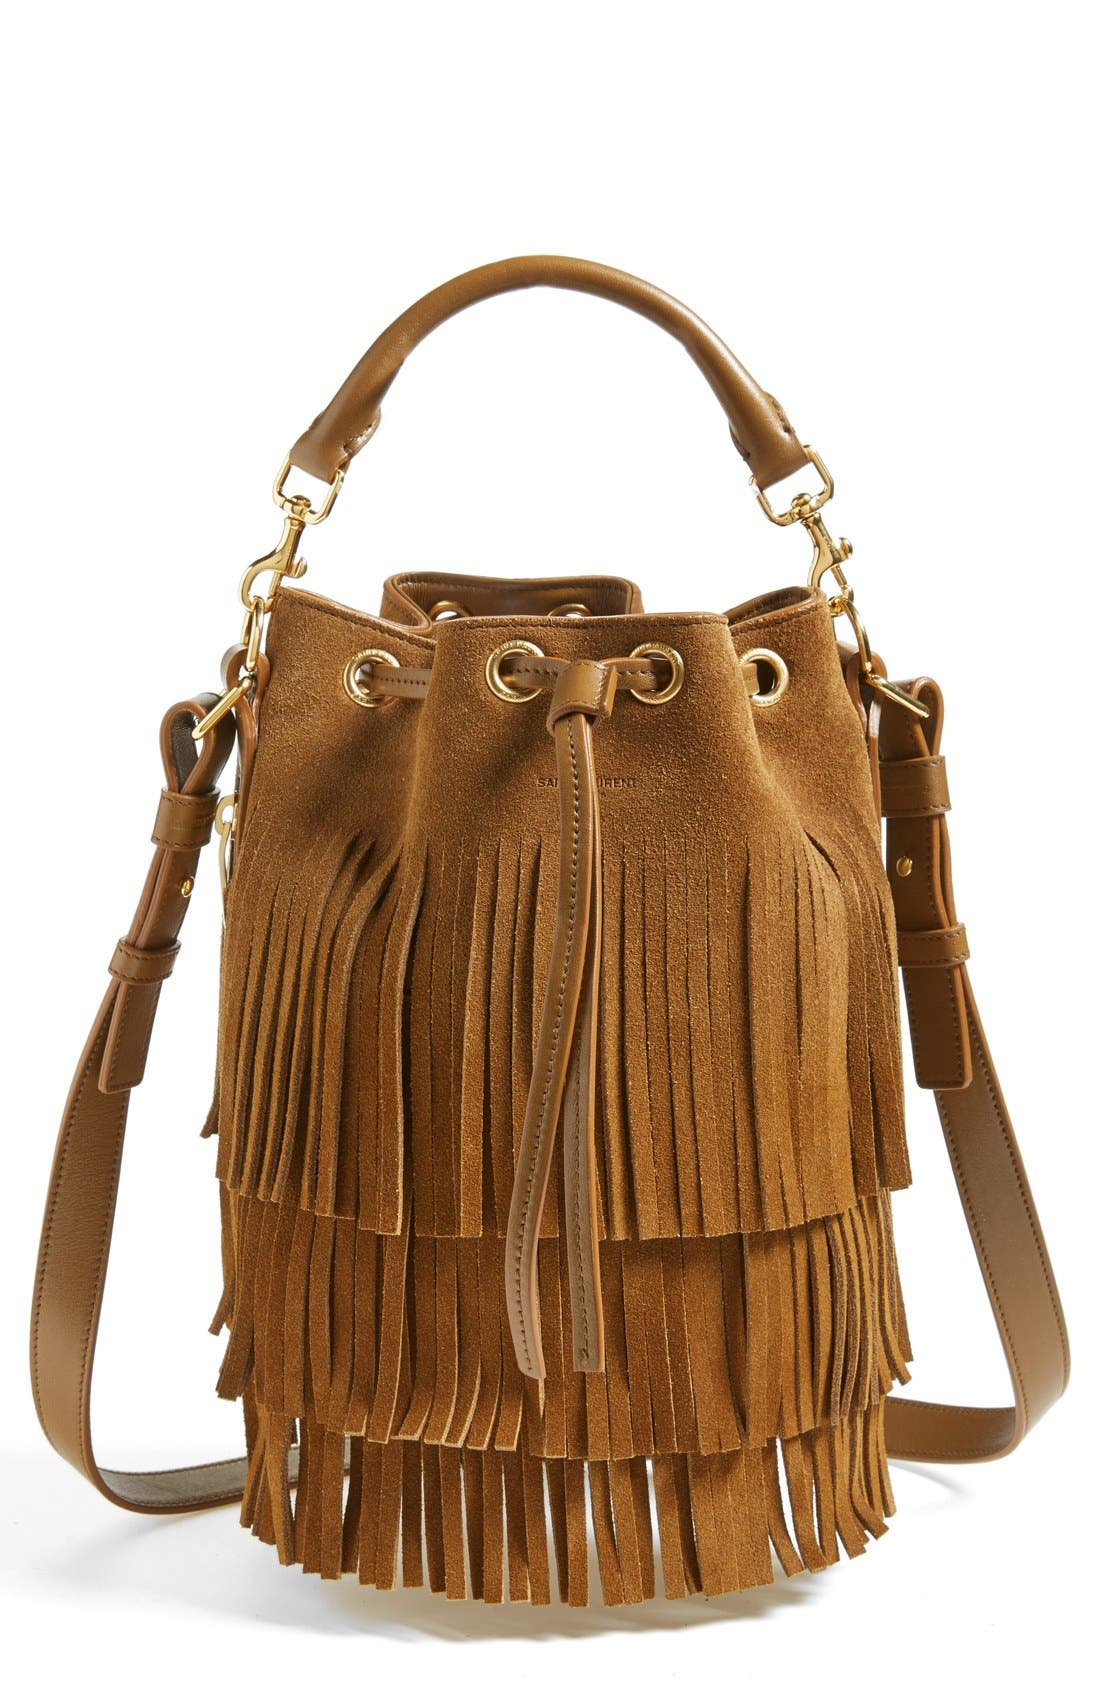 Saint Laurent 'Seau' Fringed Suede Bucket Bag